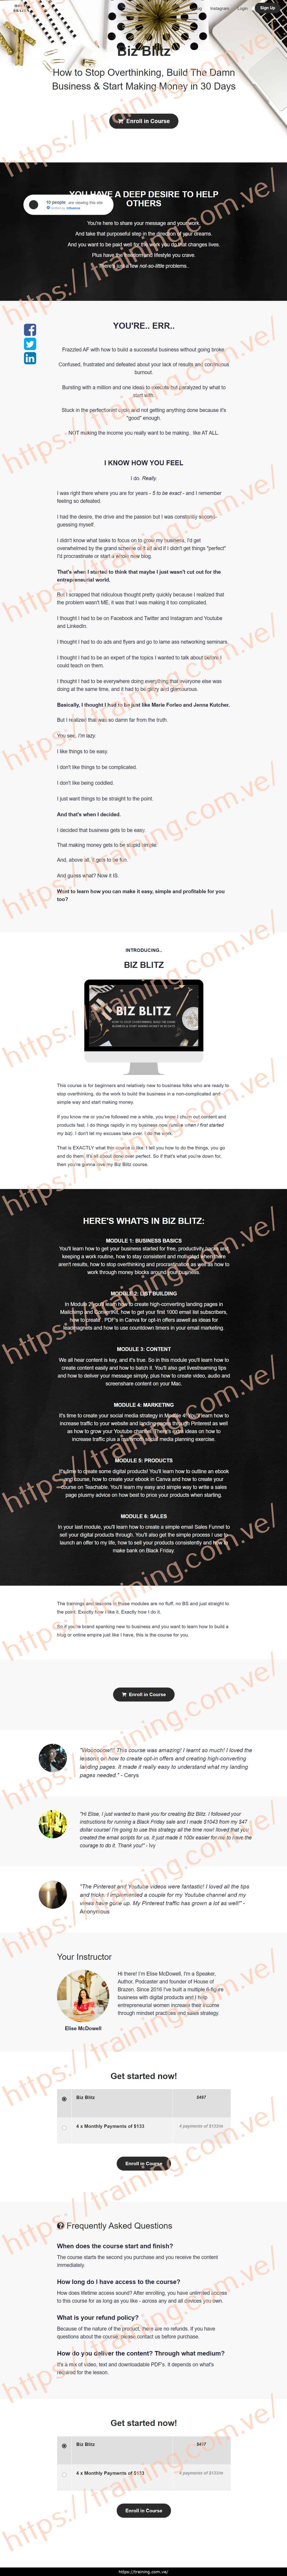 Biz Blitz by Elise McDowell Sales Page